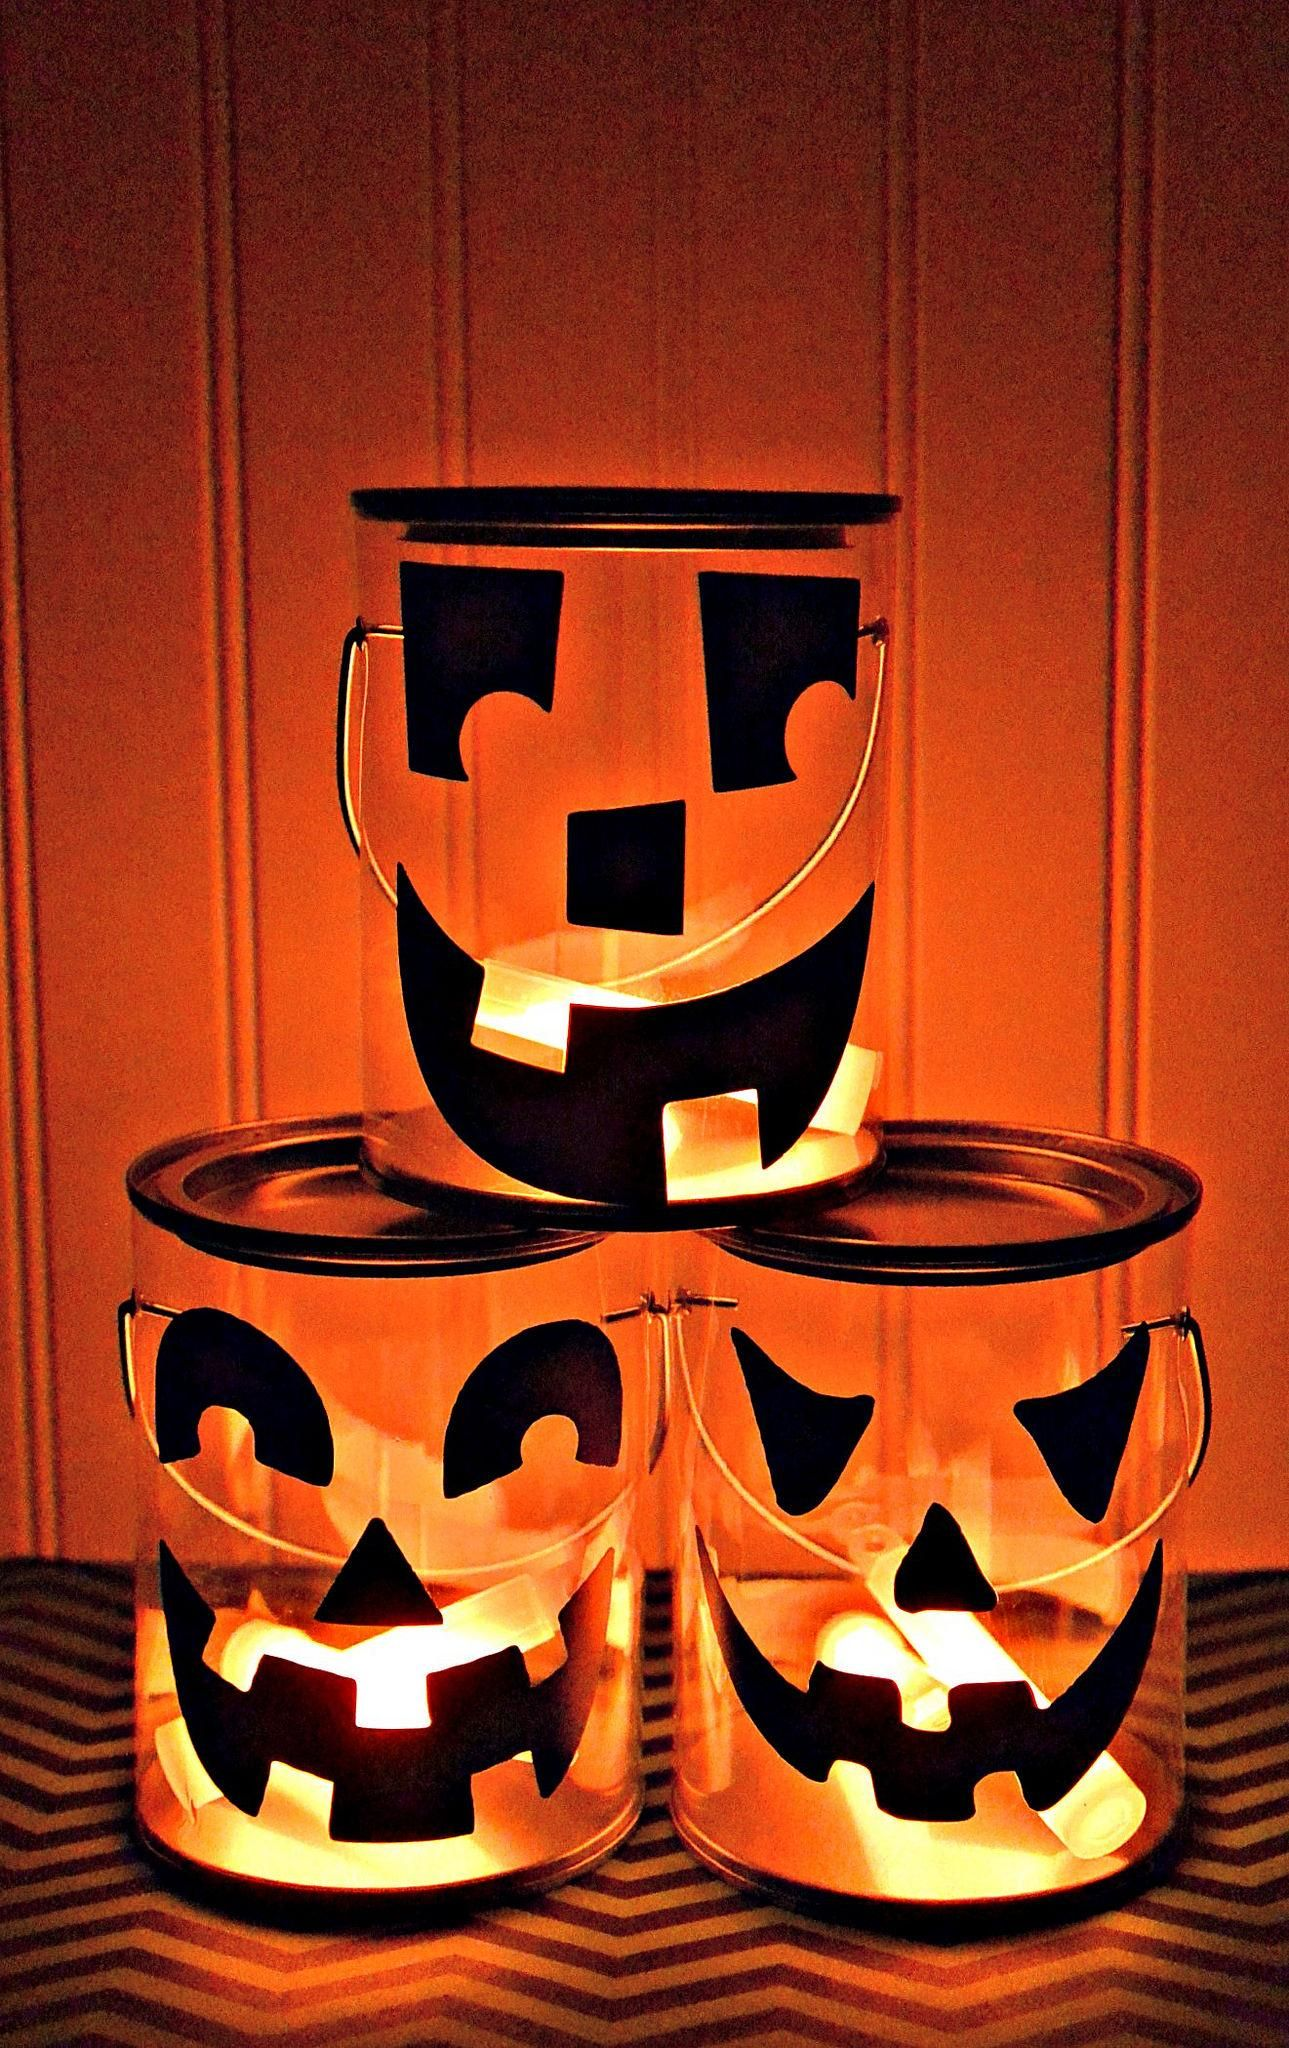 DIY Jack-o-Lantern Luminary Halloween Decorations with Glow Sticks - halloween decorations diy